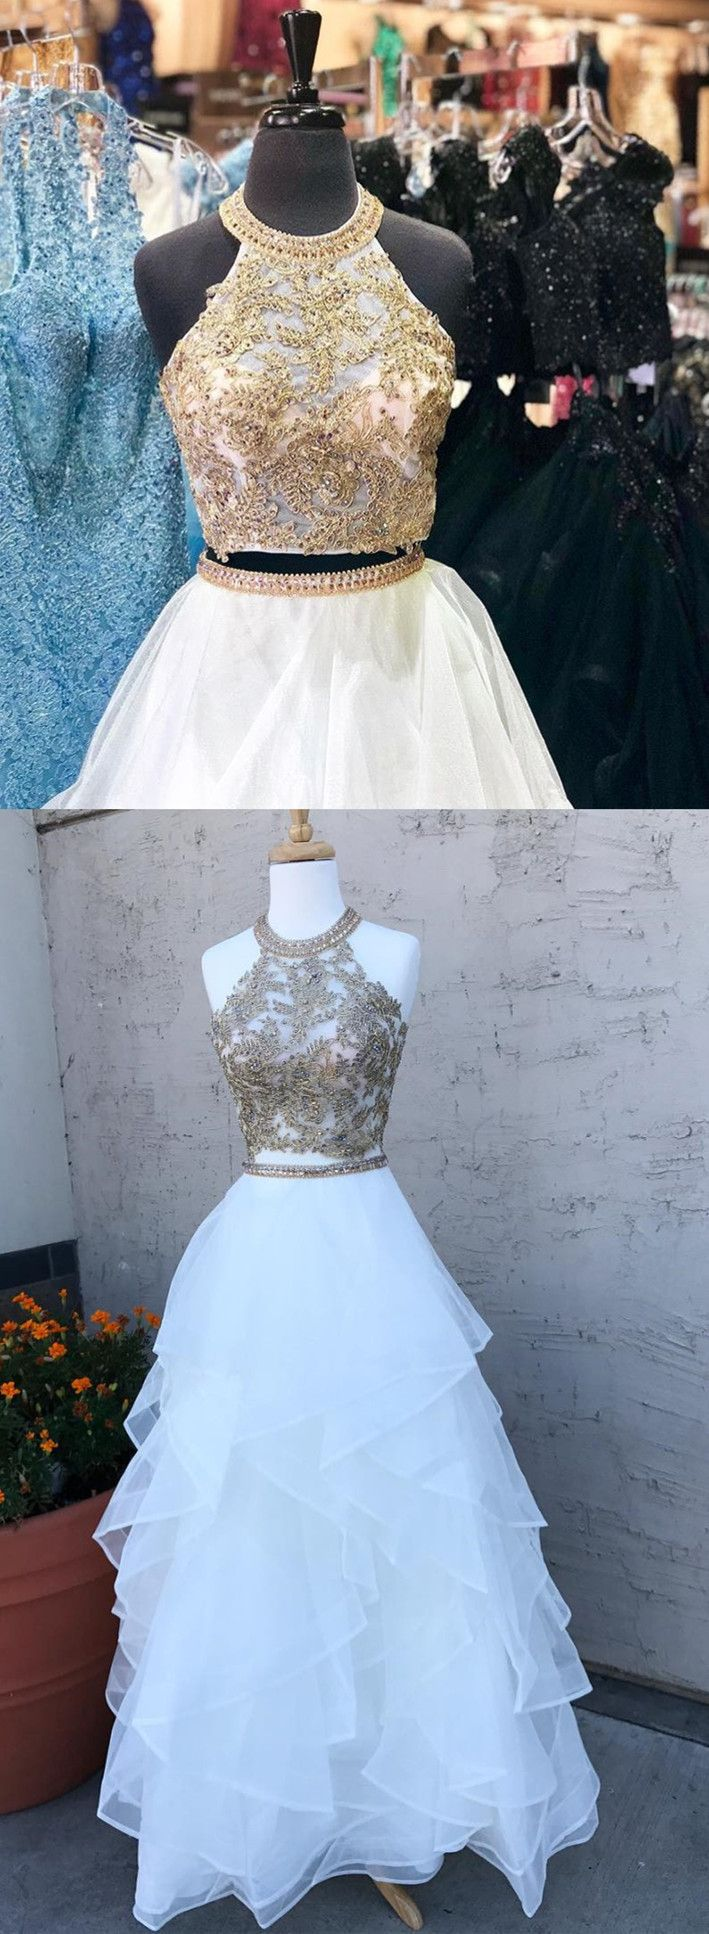 Sparkly Sequins Two Piece White Long Prom Dress w Inspiracje